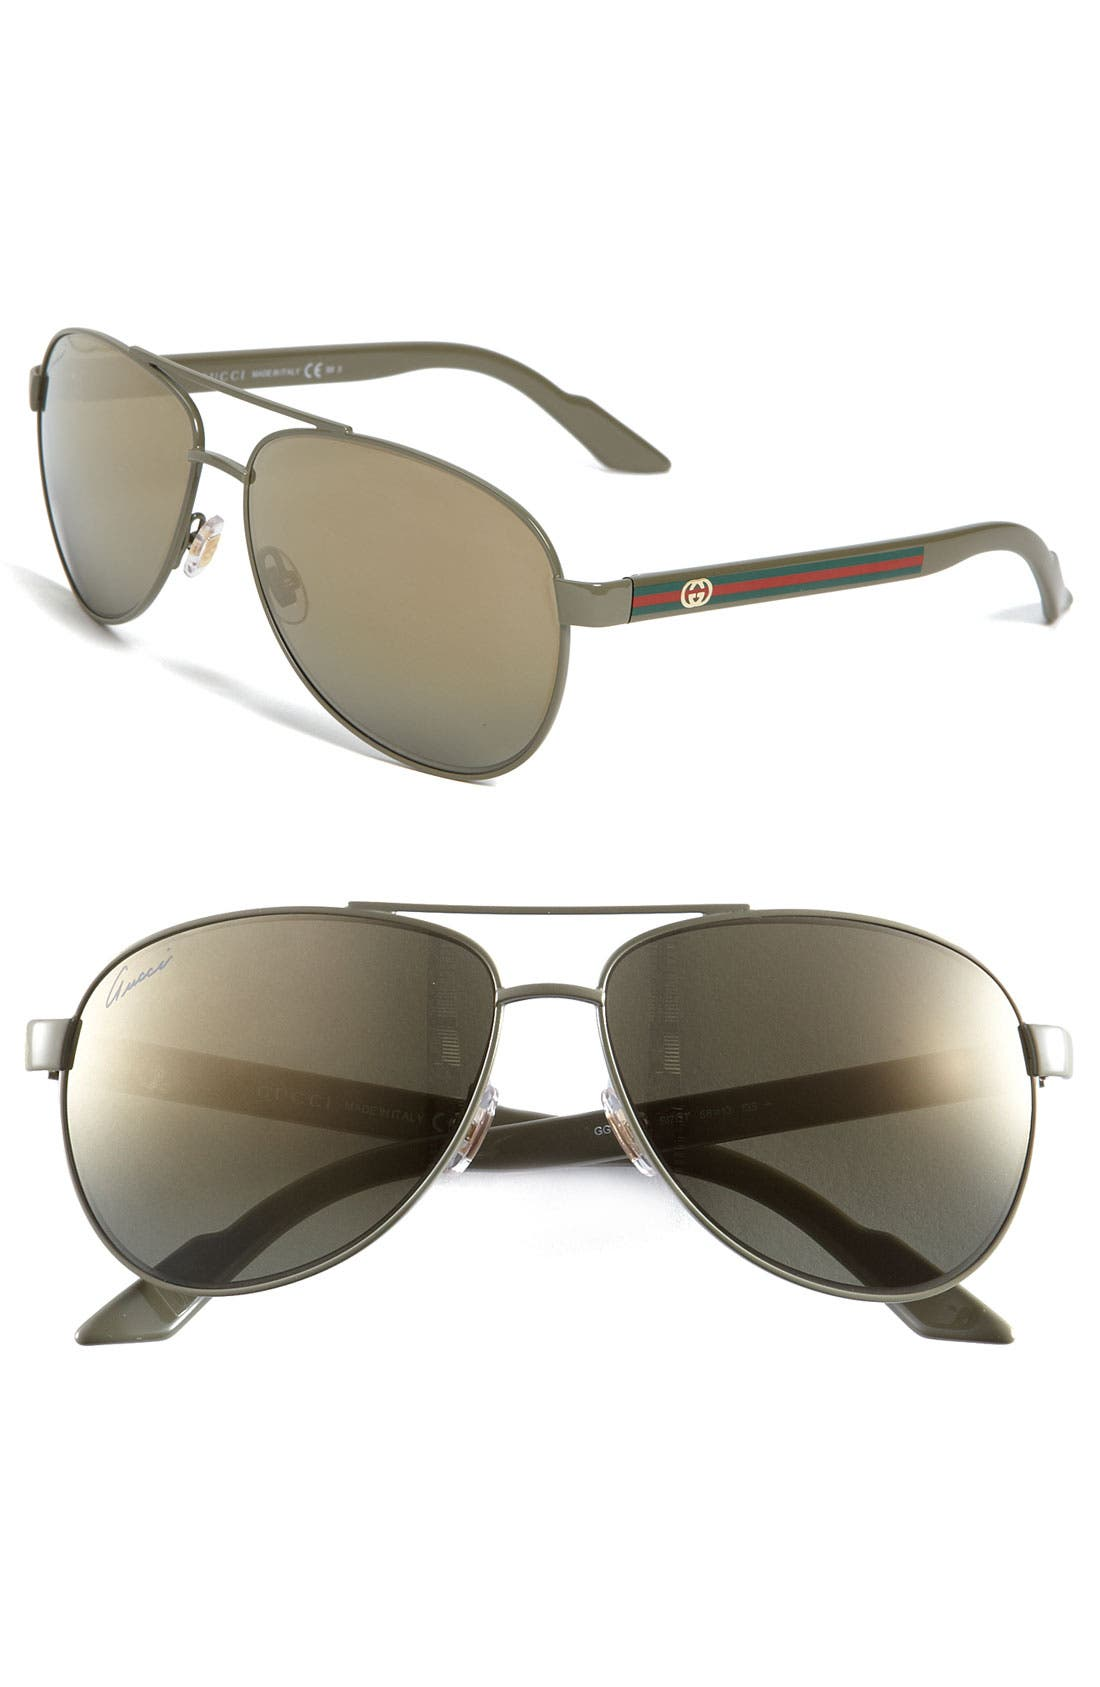 Alternate Image 1 Selected - Gucci 'Ribbon' 58mm Aviator Sunglasses